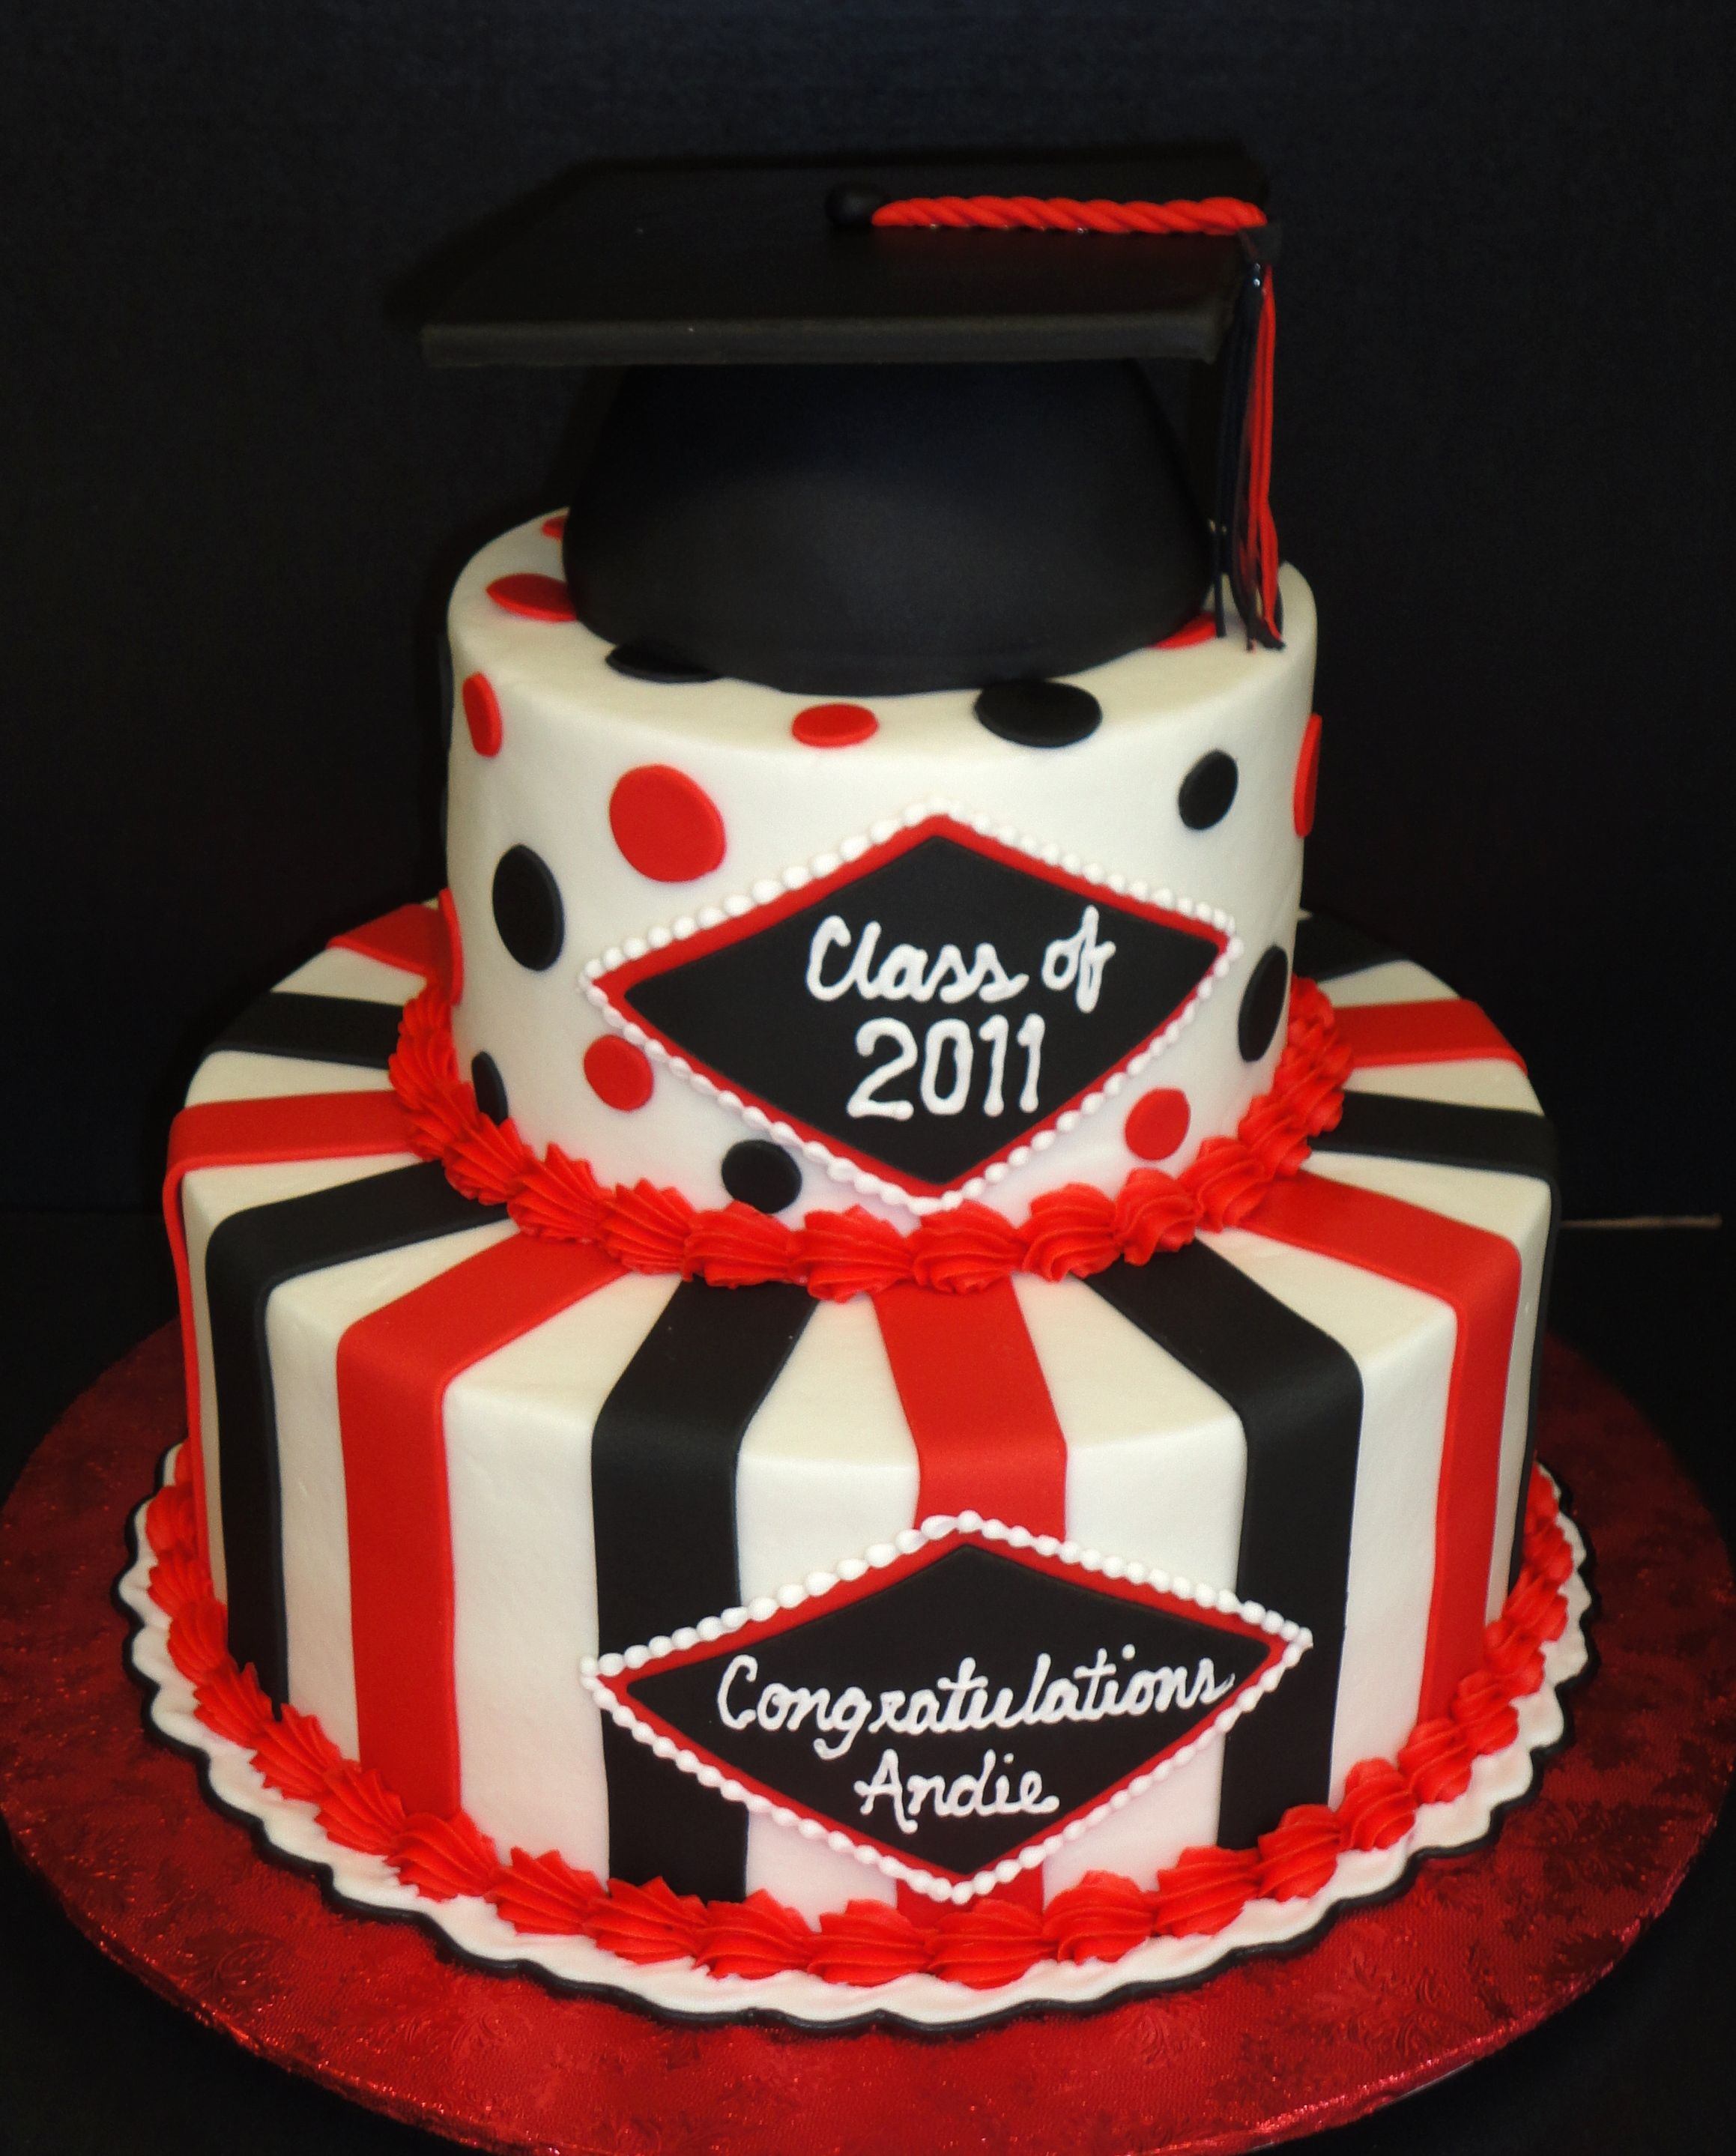 Best Cake Design Schools : College Graduation Cakes on Pinterest Graduation Cake ...